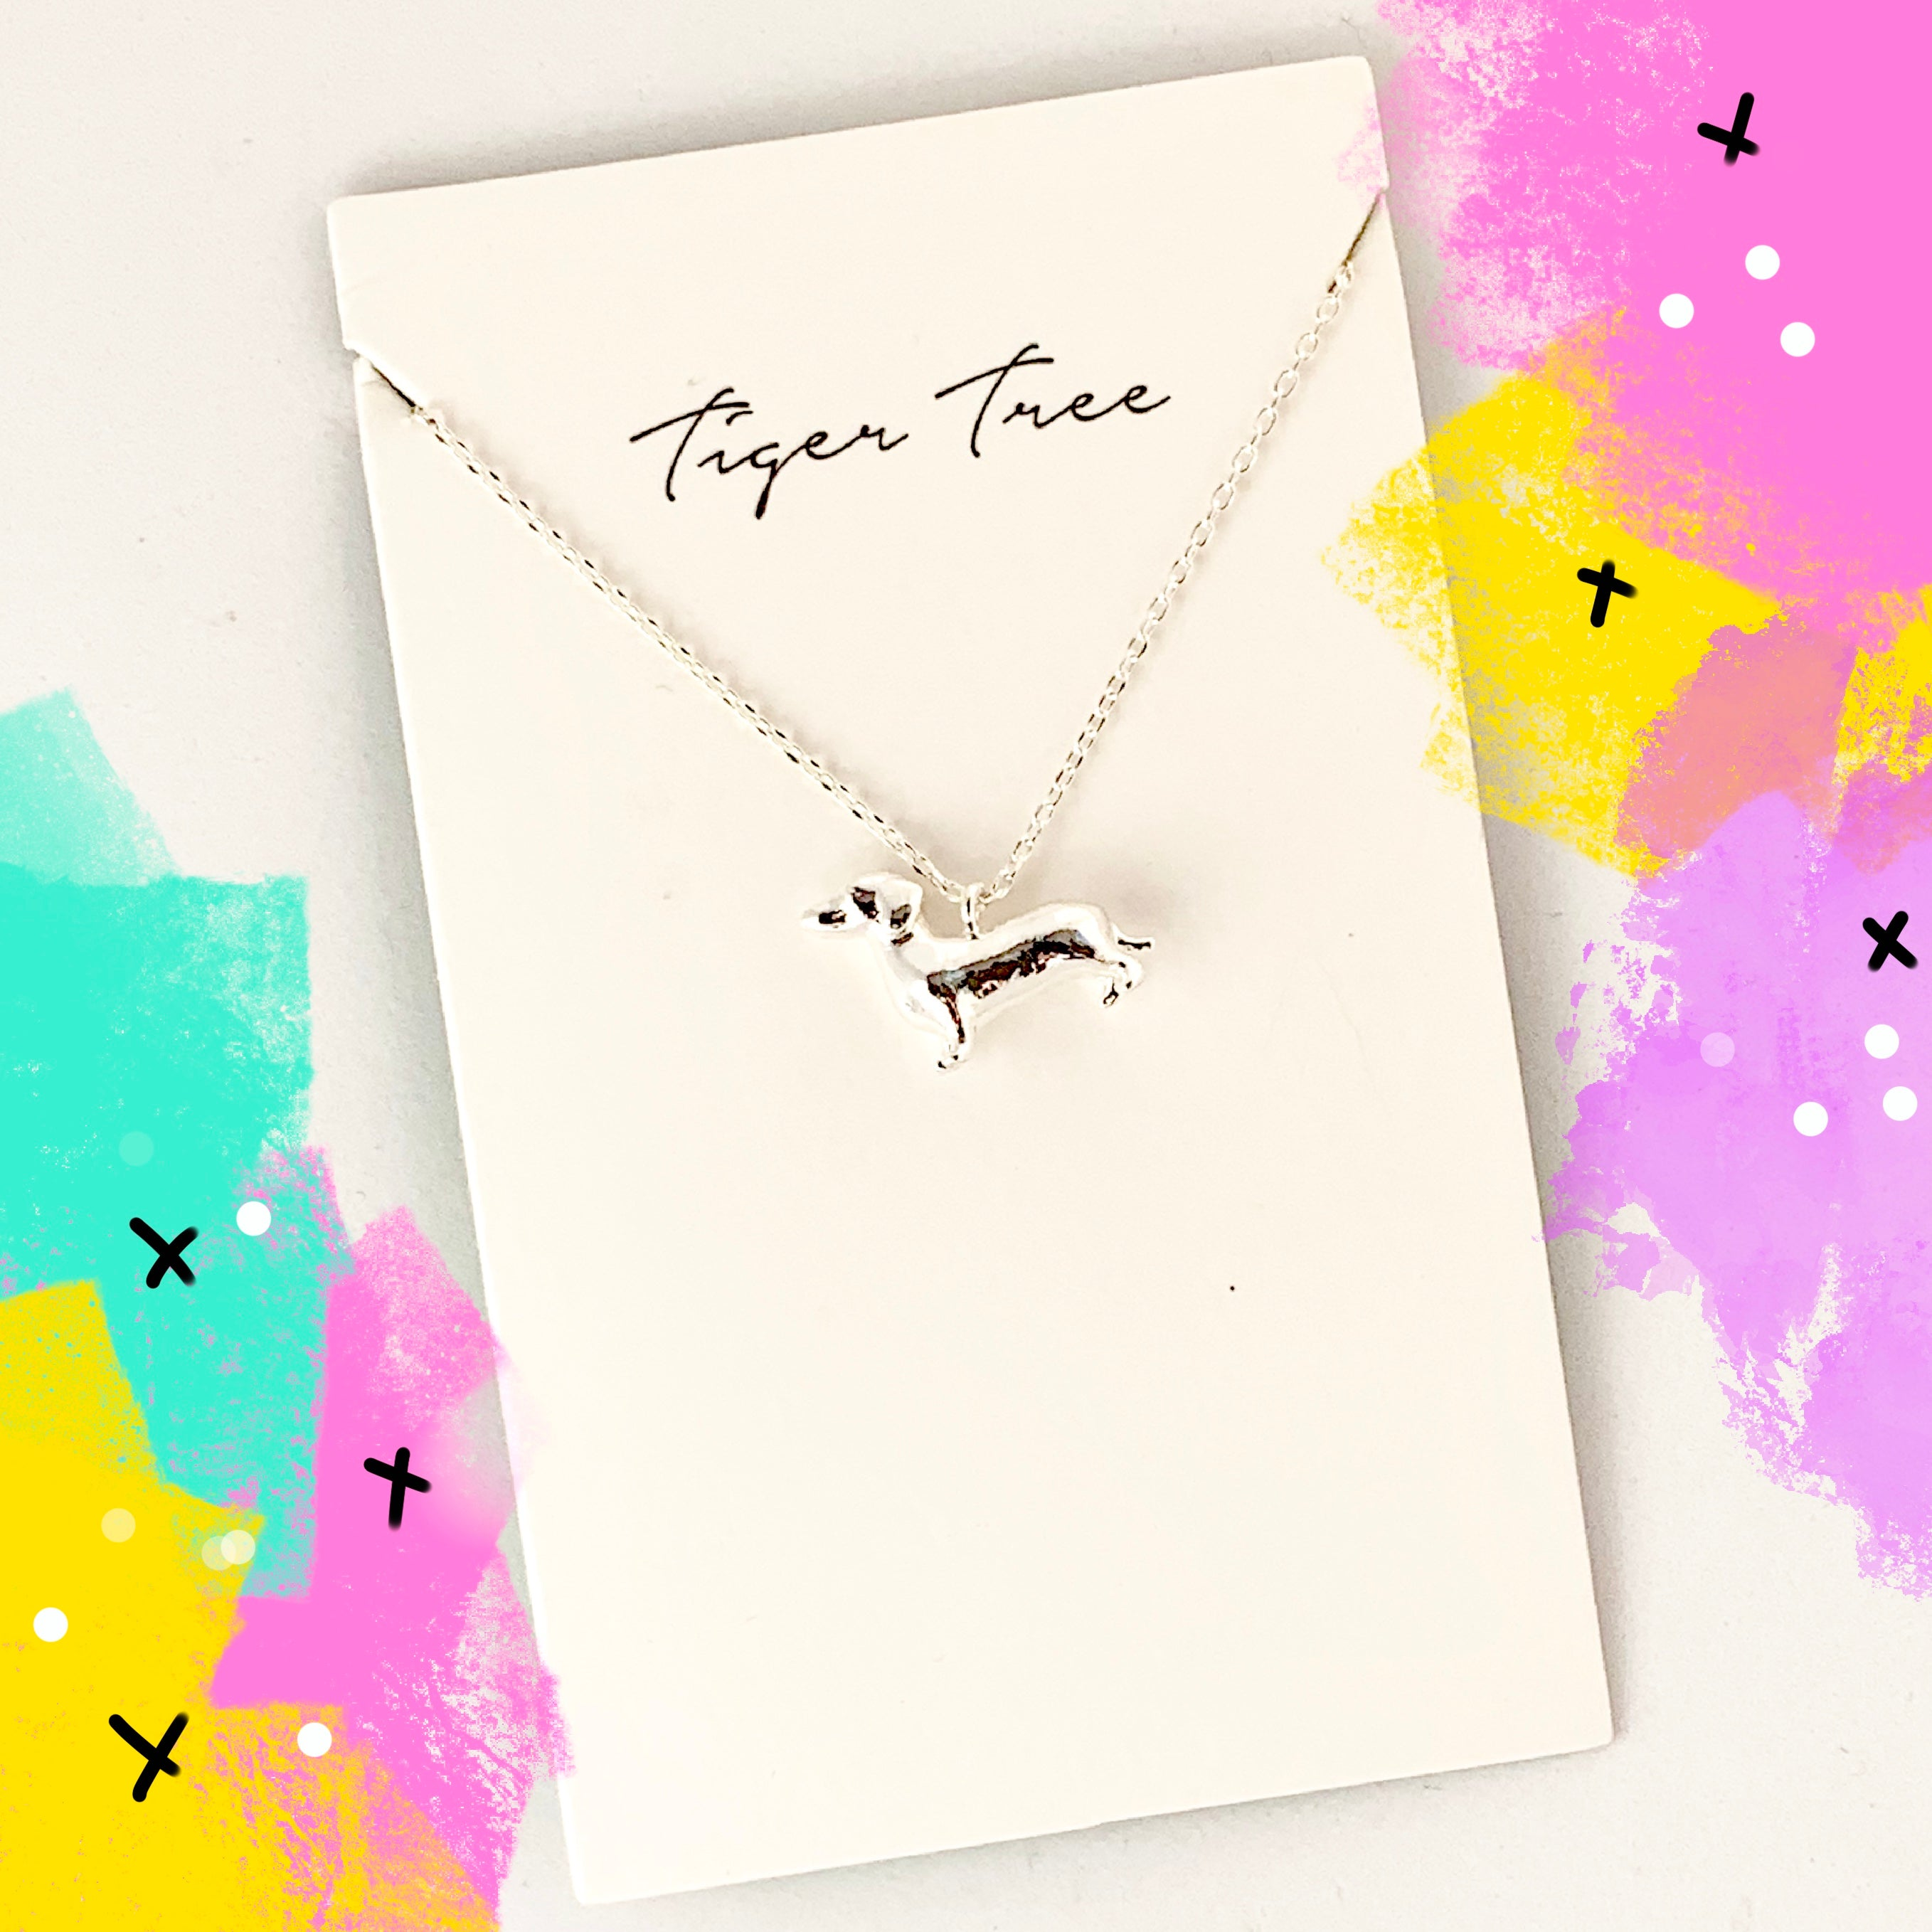 Tiger Tree dainty dachshund necklace